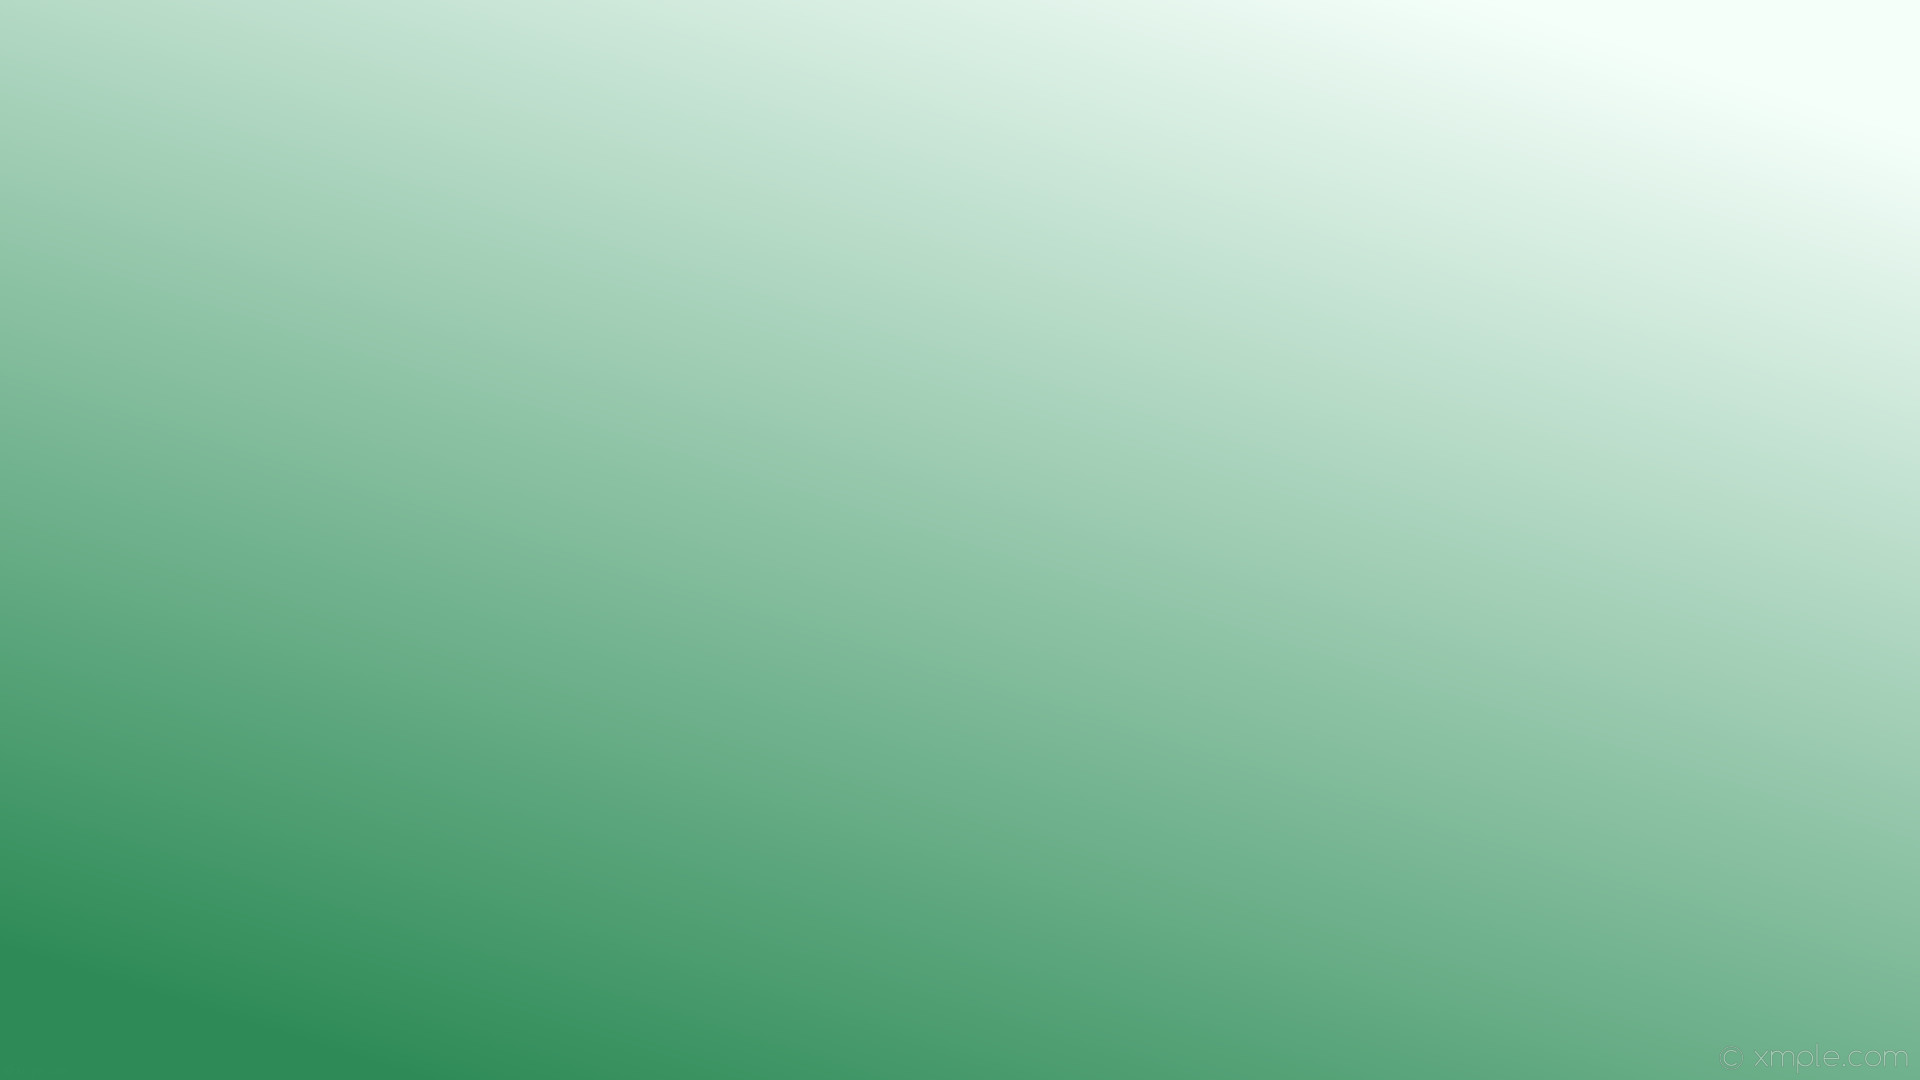 1920x1080 wallpaper white green linear gradient sea green mint cream #2e8b57 #f5fffa  225°